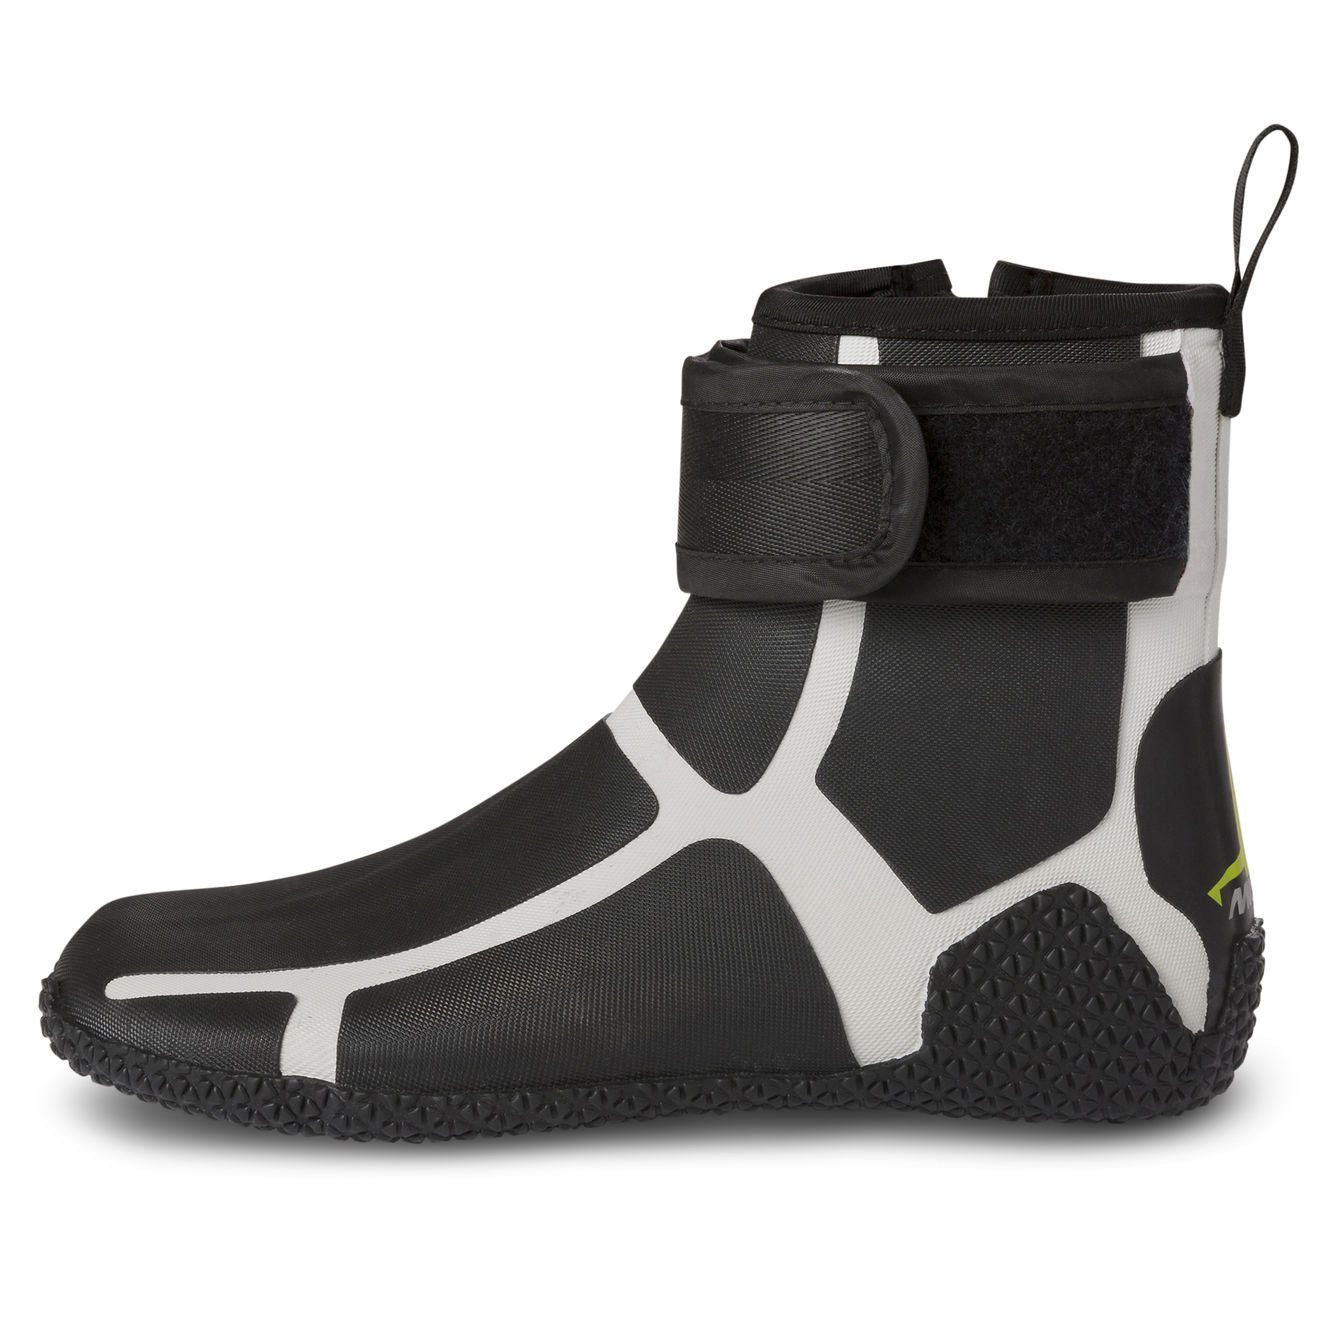 CHAMP DINGHY BOOT